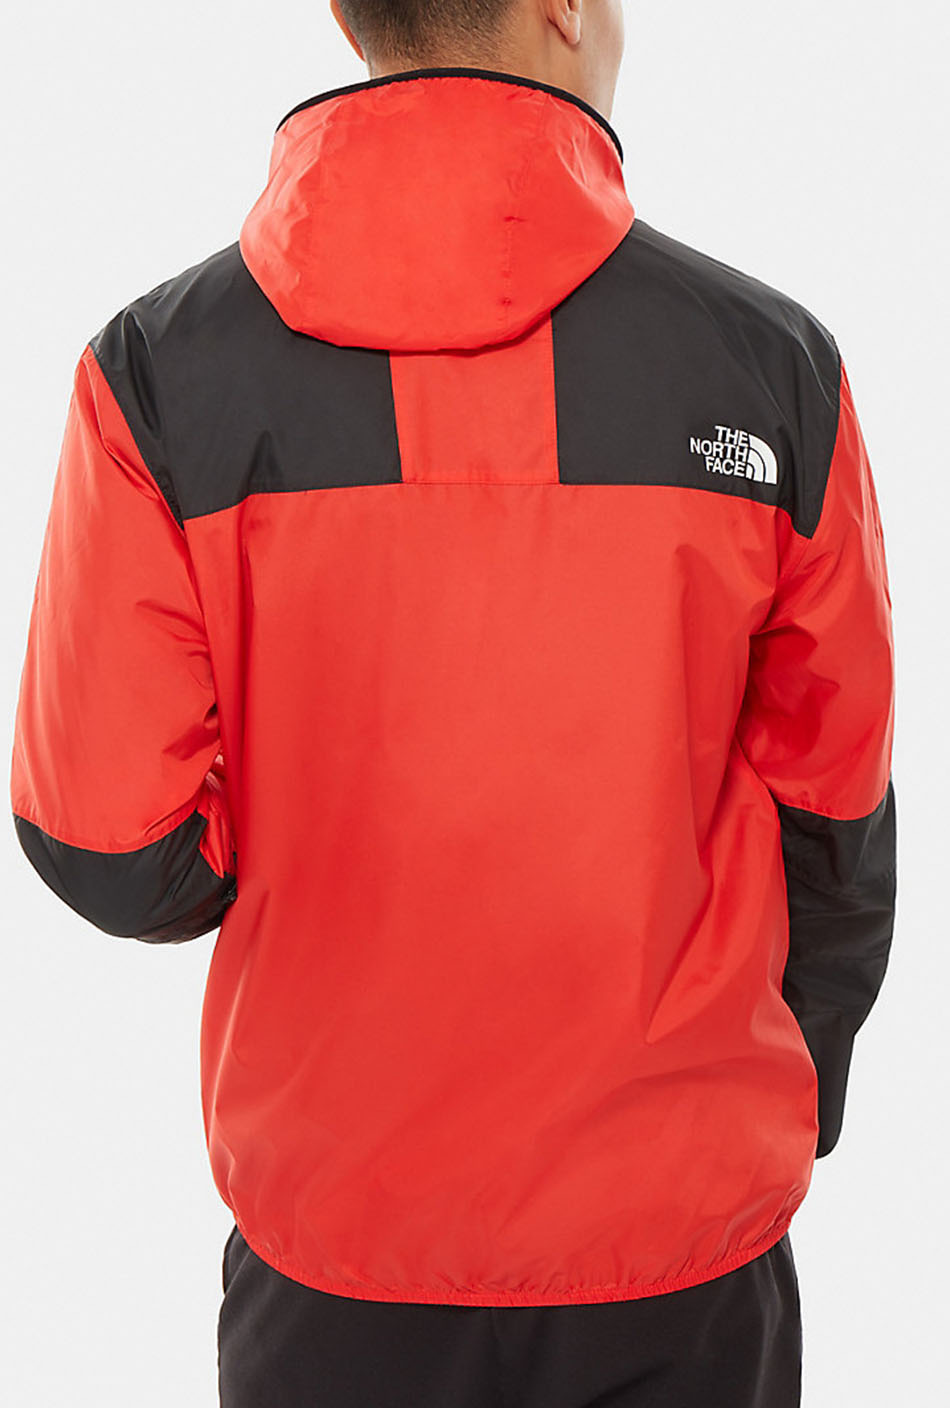 The North Face 1985 Seasonal Mountain Jacket Red/Black